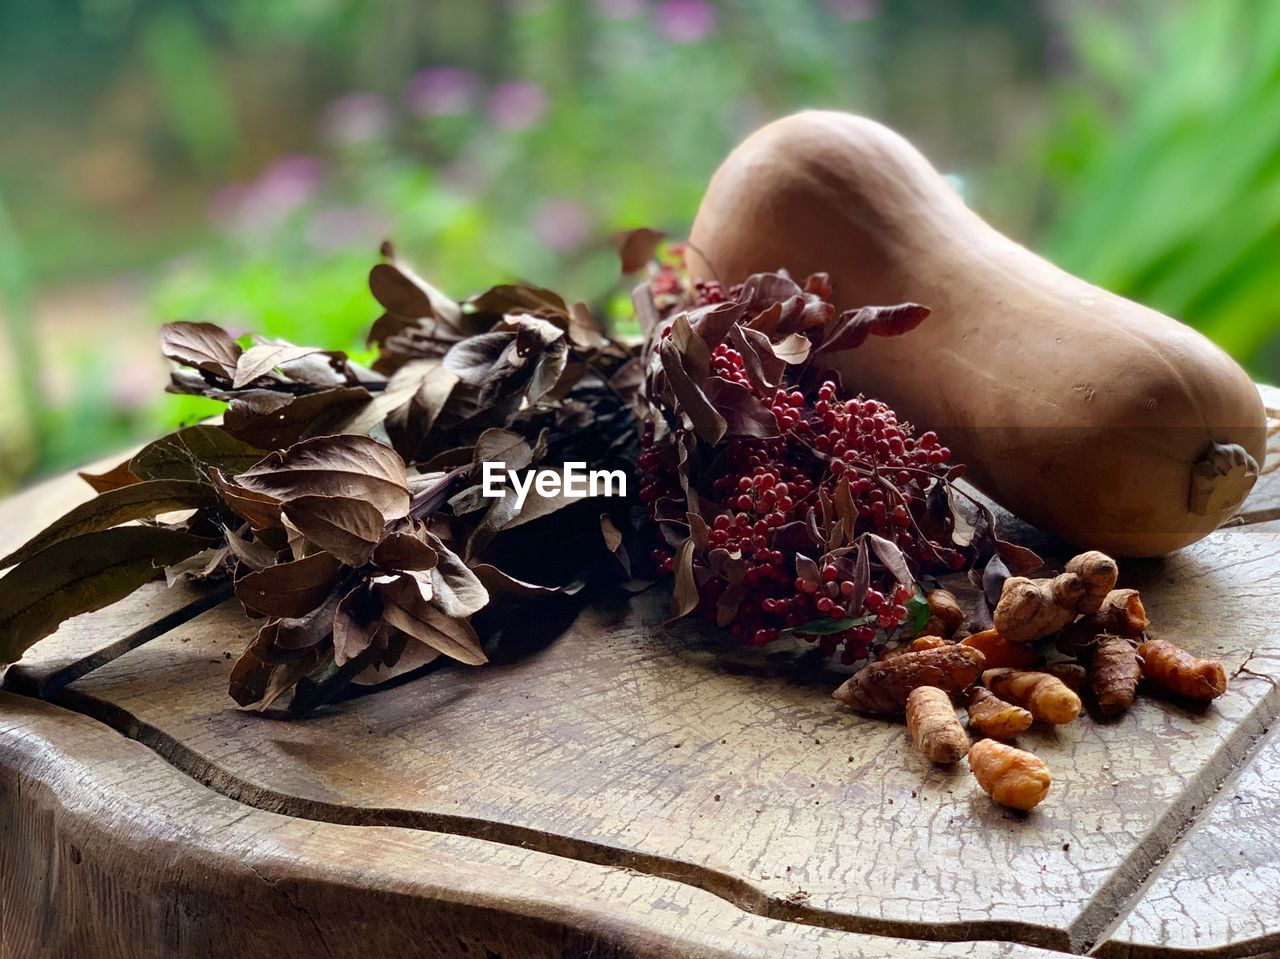 food and drink, food, freshness, close-up, healthy eating, table, wellbeing, focus on foreground, no people, dry, nut, nature, still life, day, plant part, nut - food, leaf, brown, plant, fruit, leaves, dried